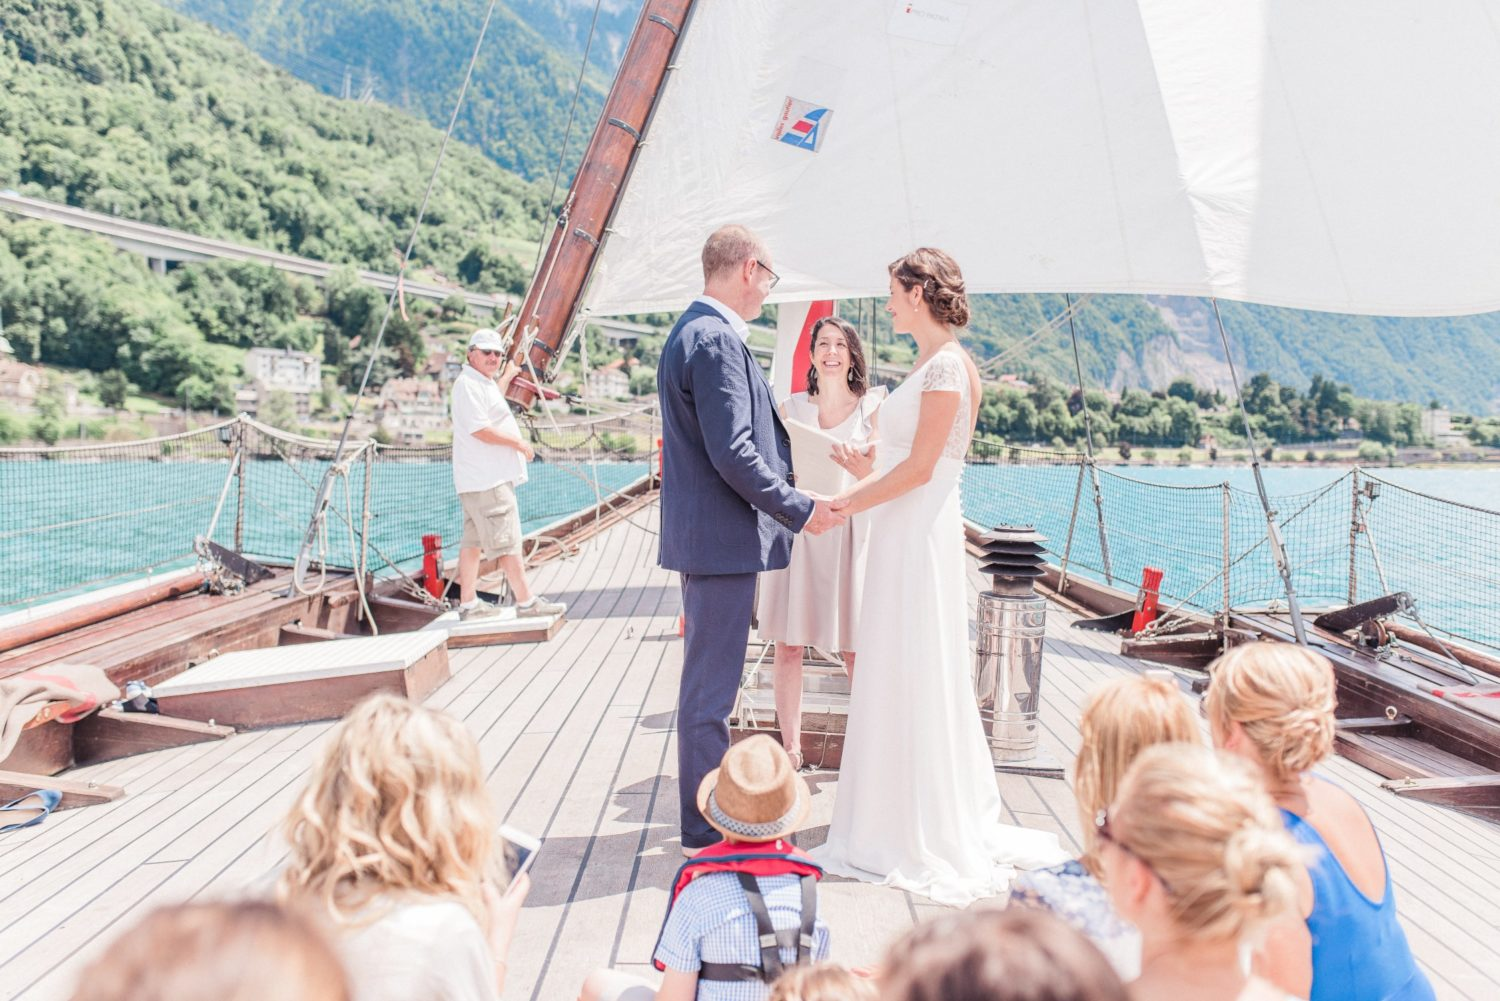 Elopement on a boat